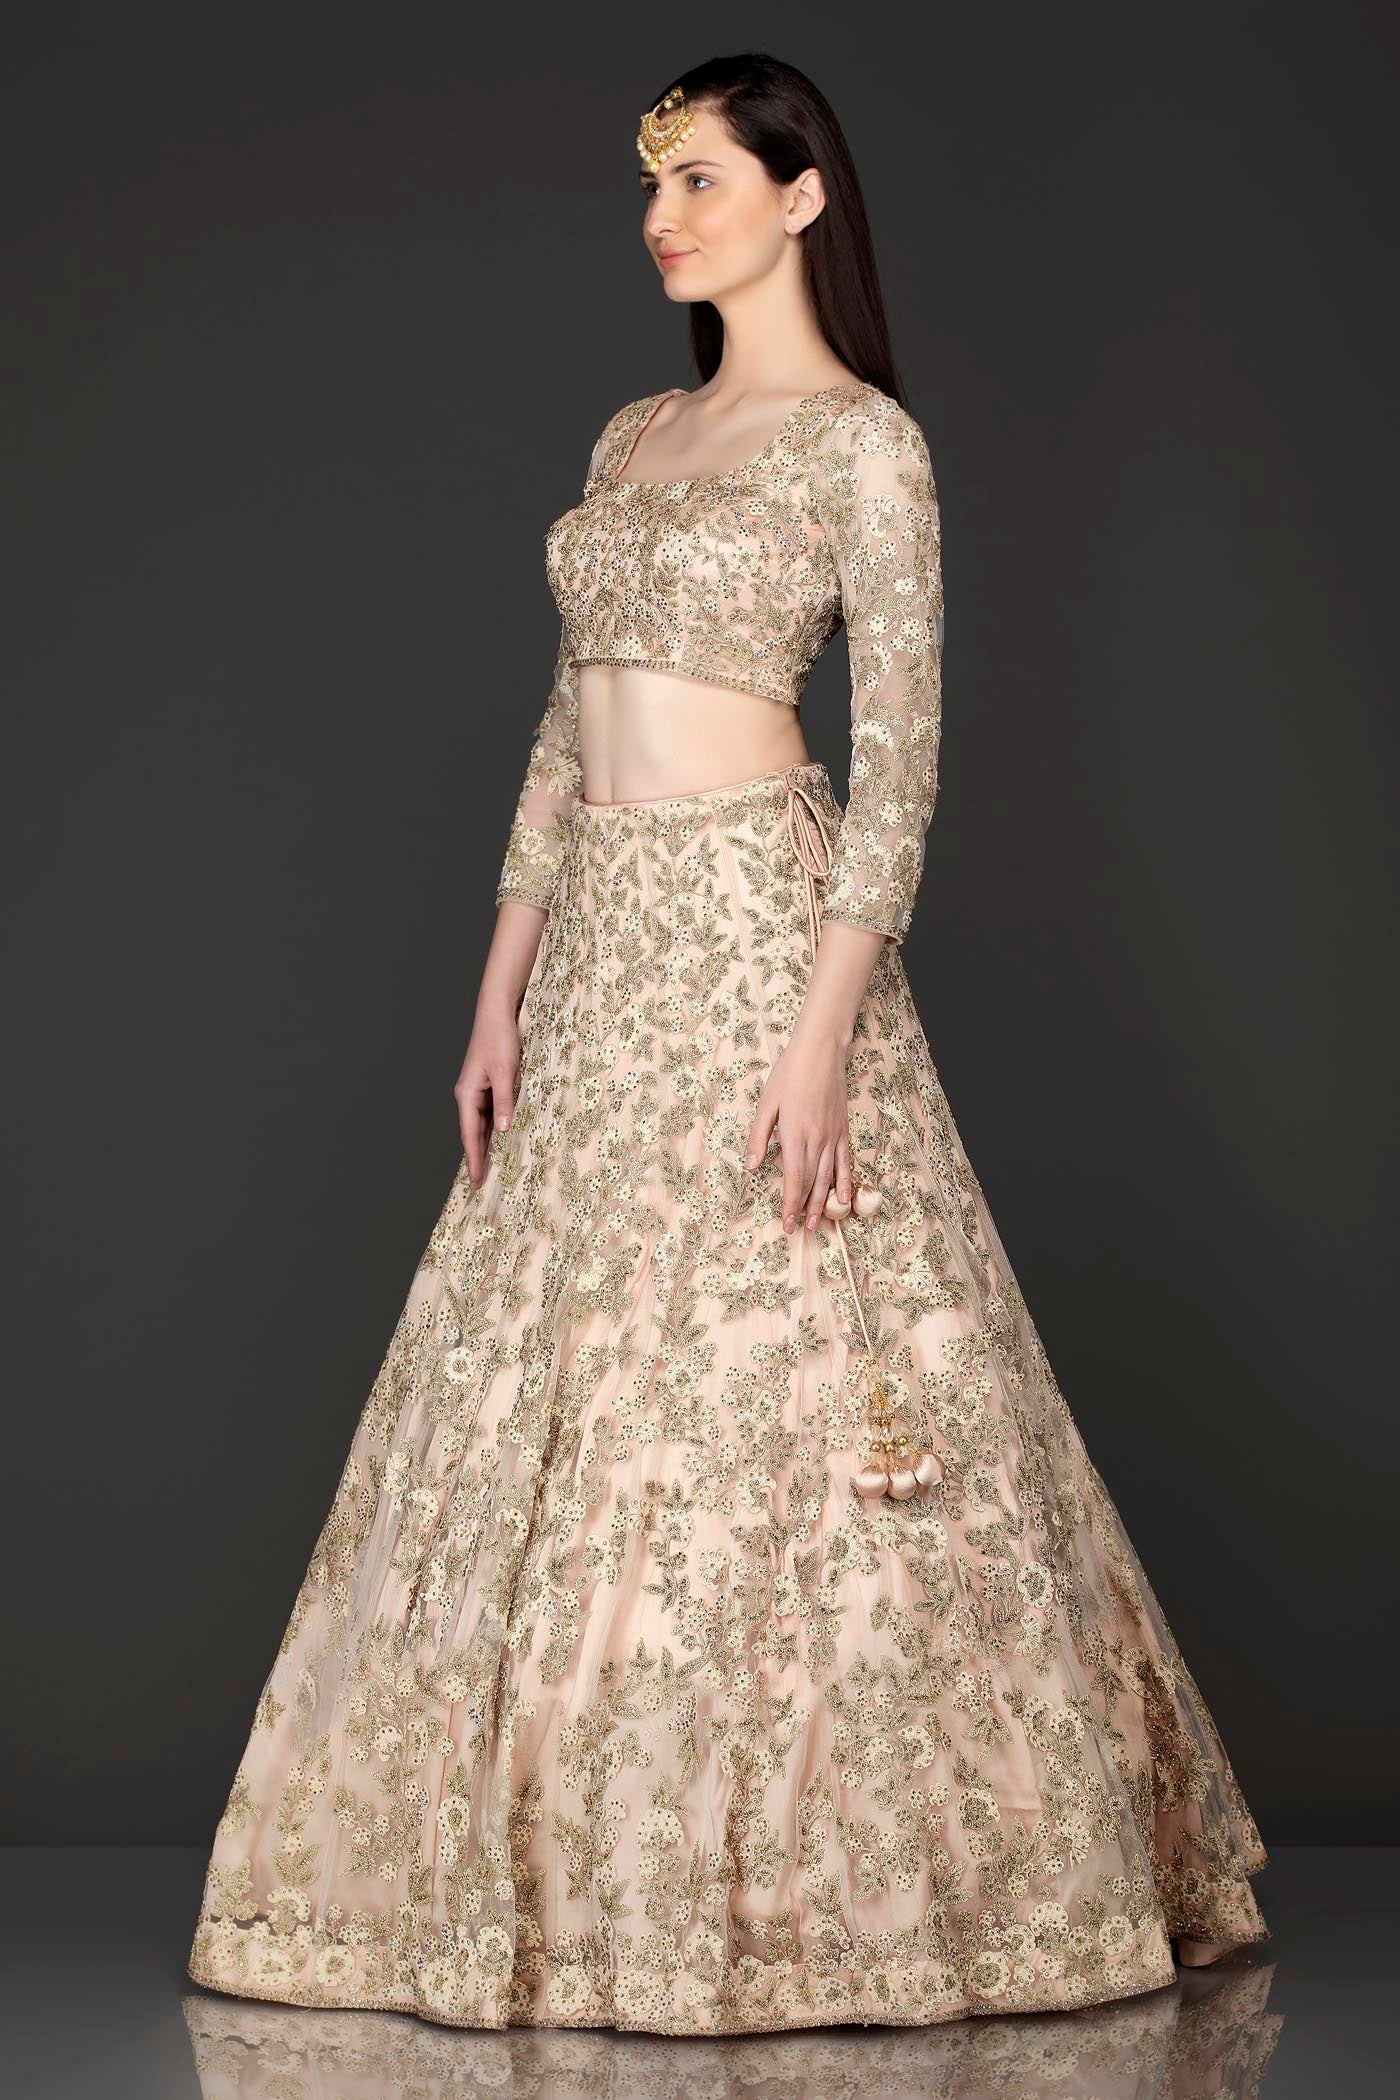 Nude Colour Net Lehenga Top With Heavy Resham And Zari Embroidery